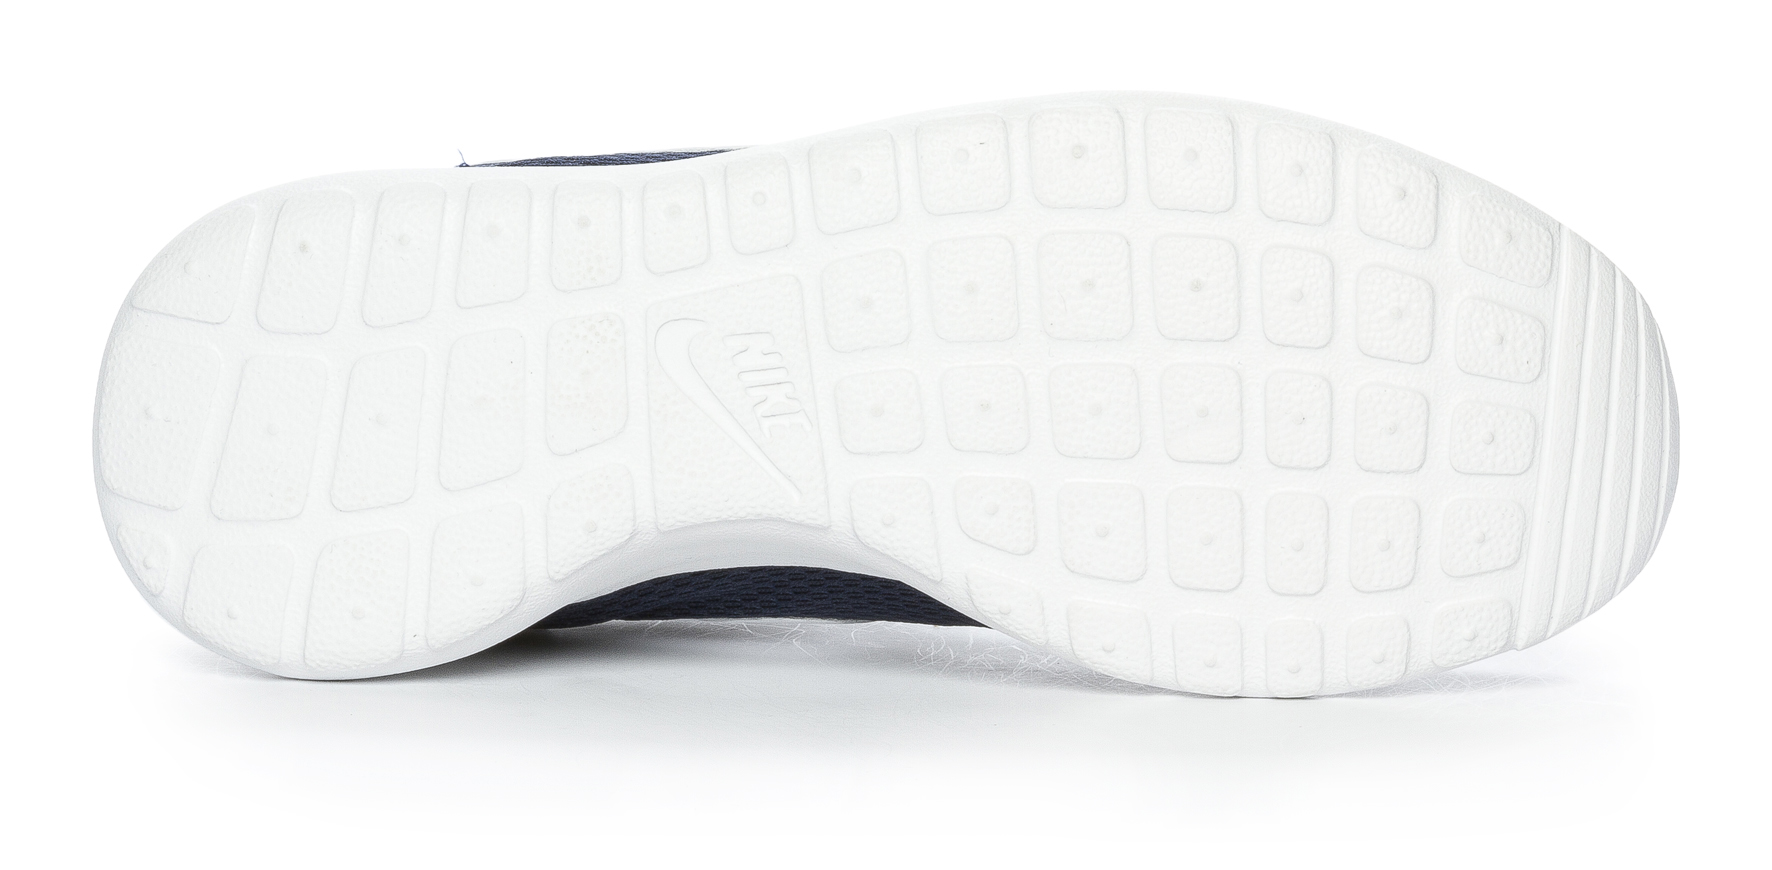 info for 8dfb7 6a2a2 Nike Roshe One - Sininen 298112 feetfirst.fi